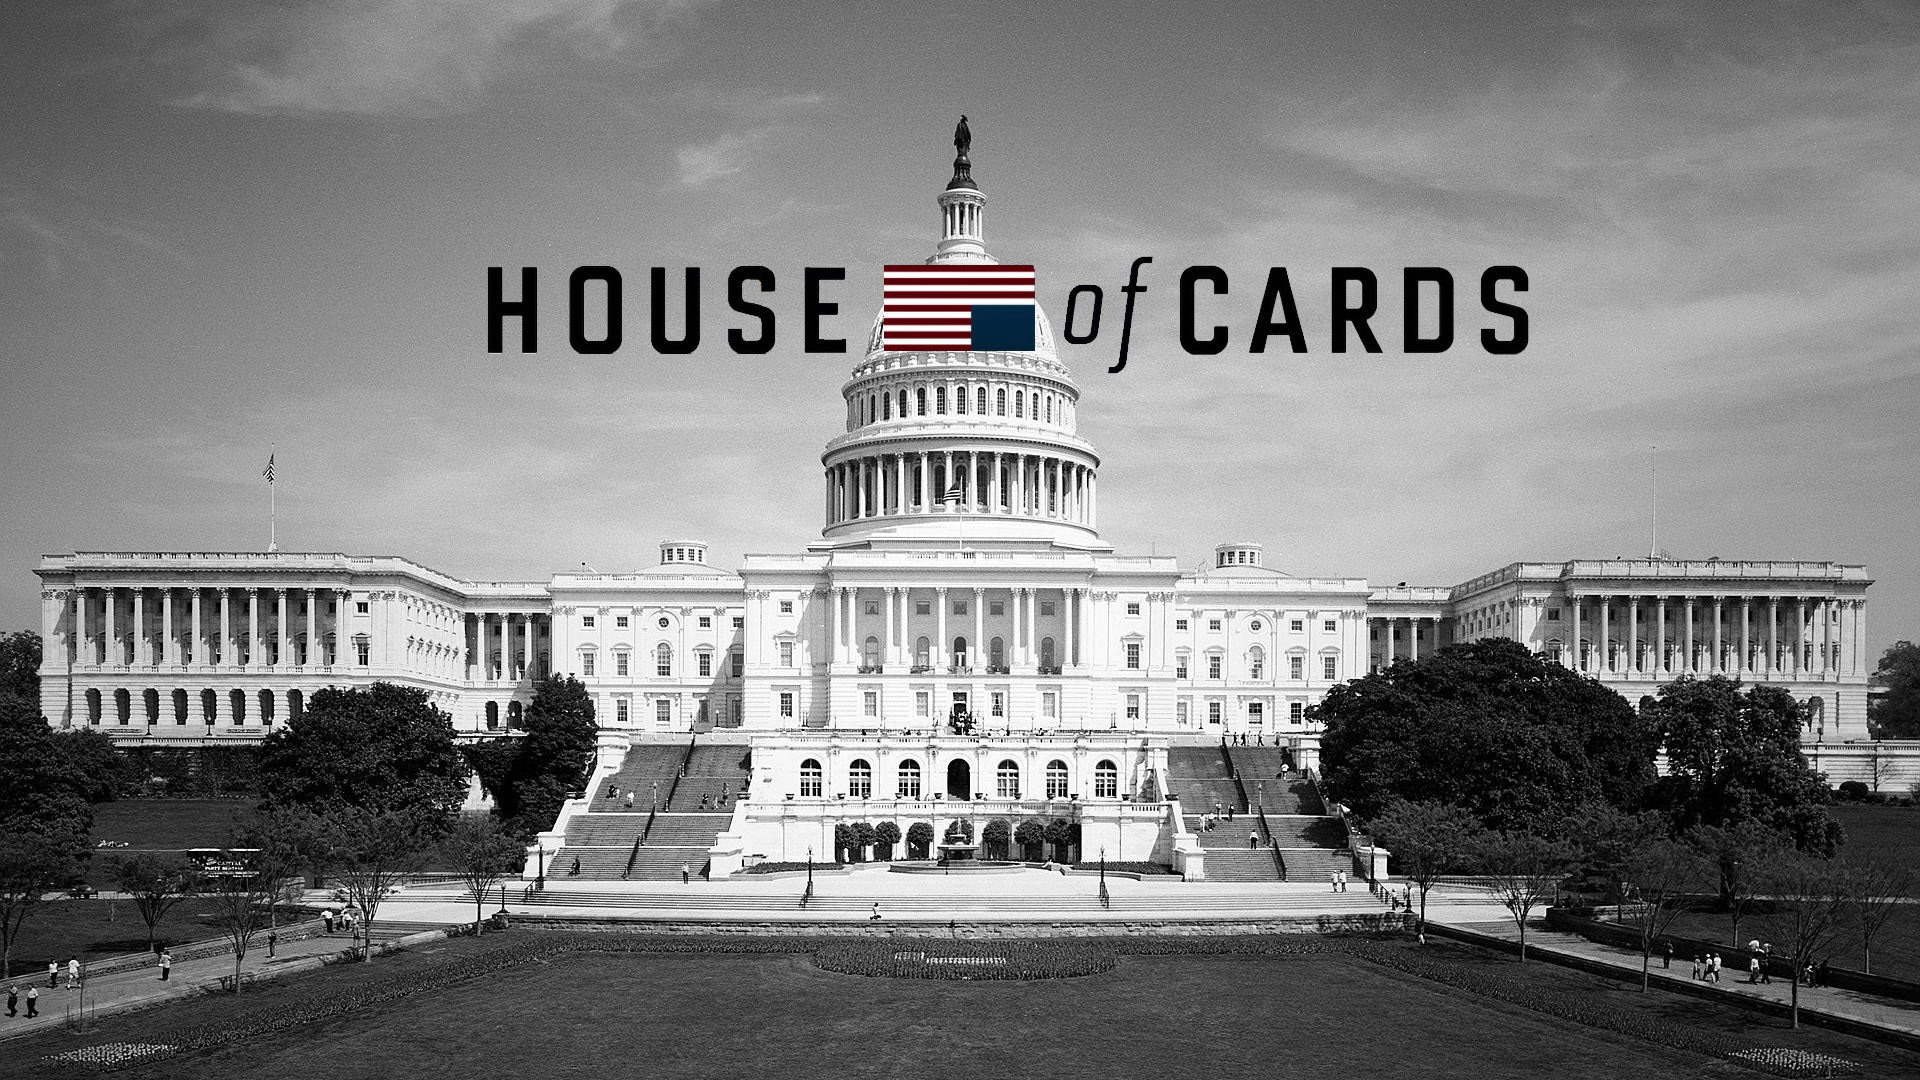 House Of Cards Quotes Kjpwg House Of Cards Wallpapers For Iphone